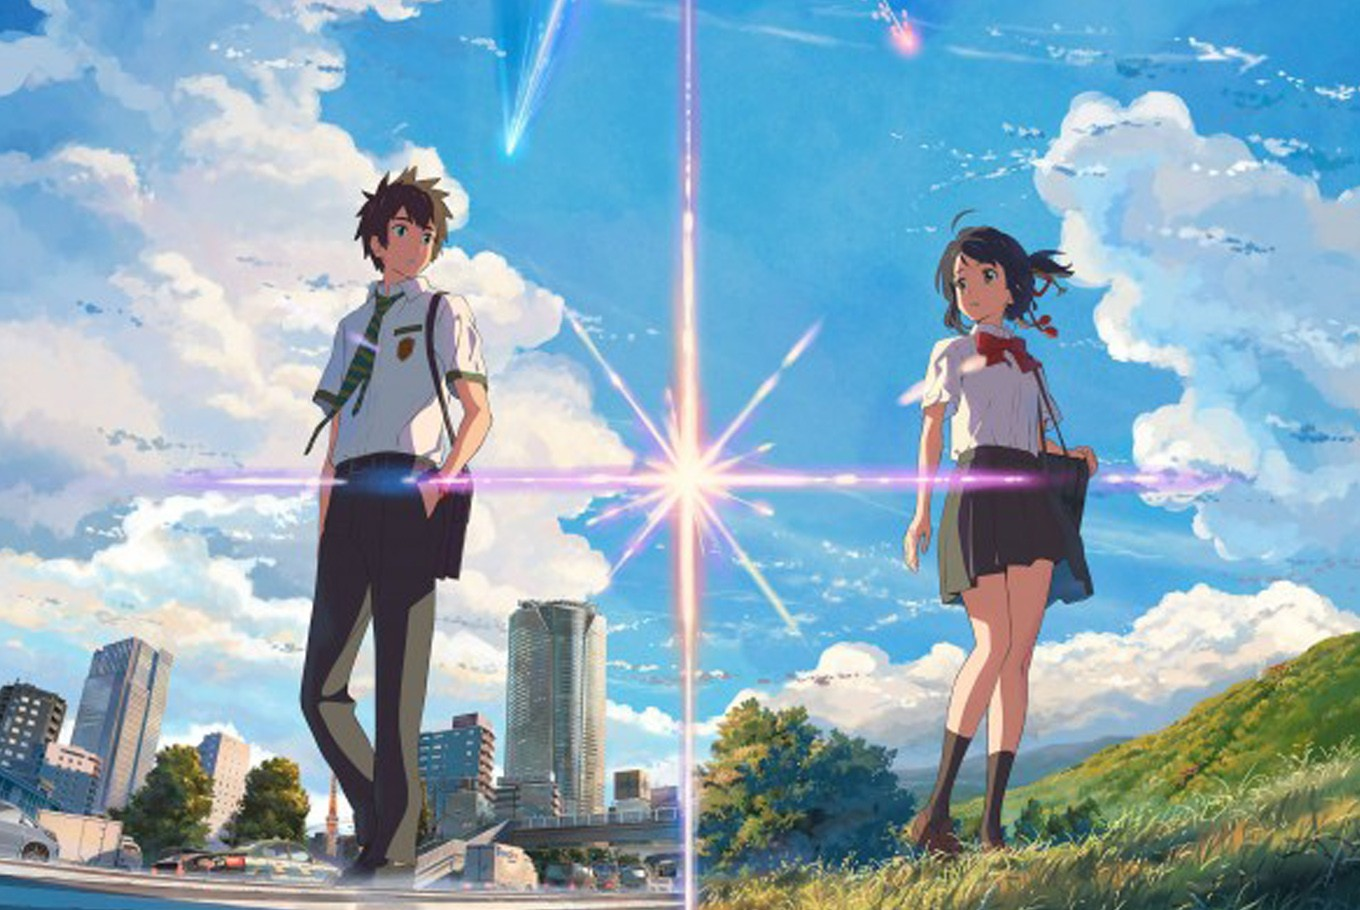 'Kimi no Na wa' director worries about movie's popularity